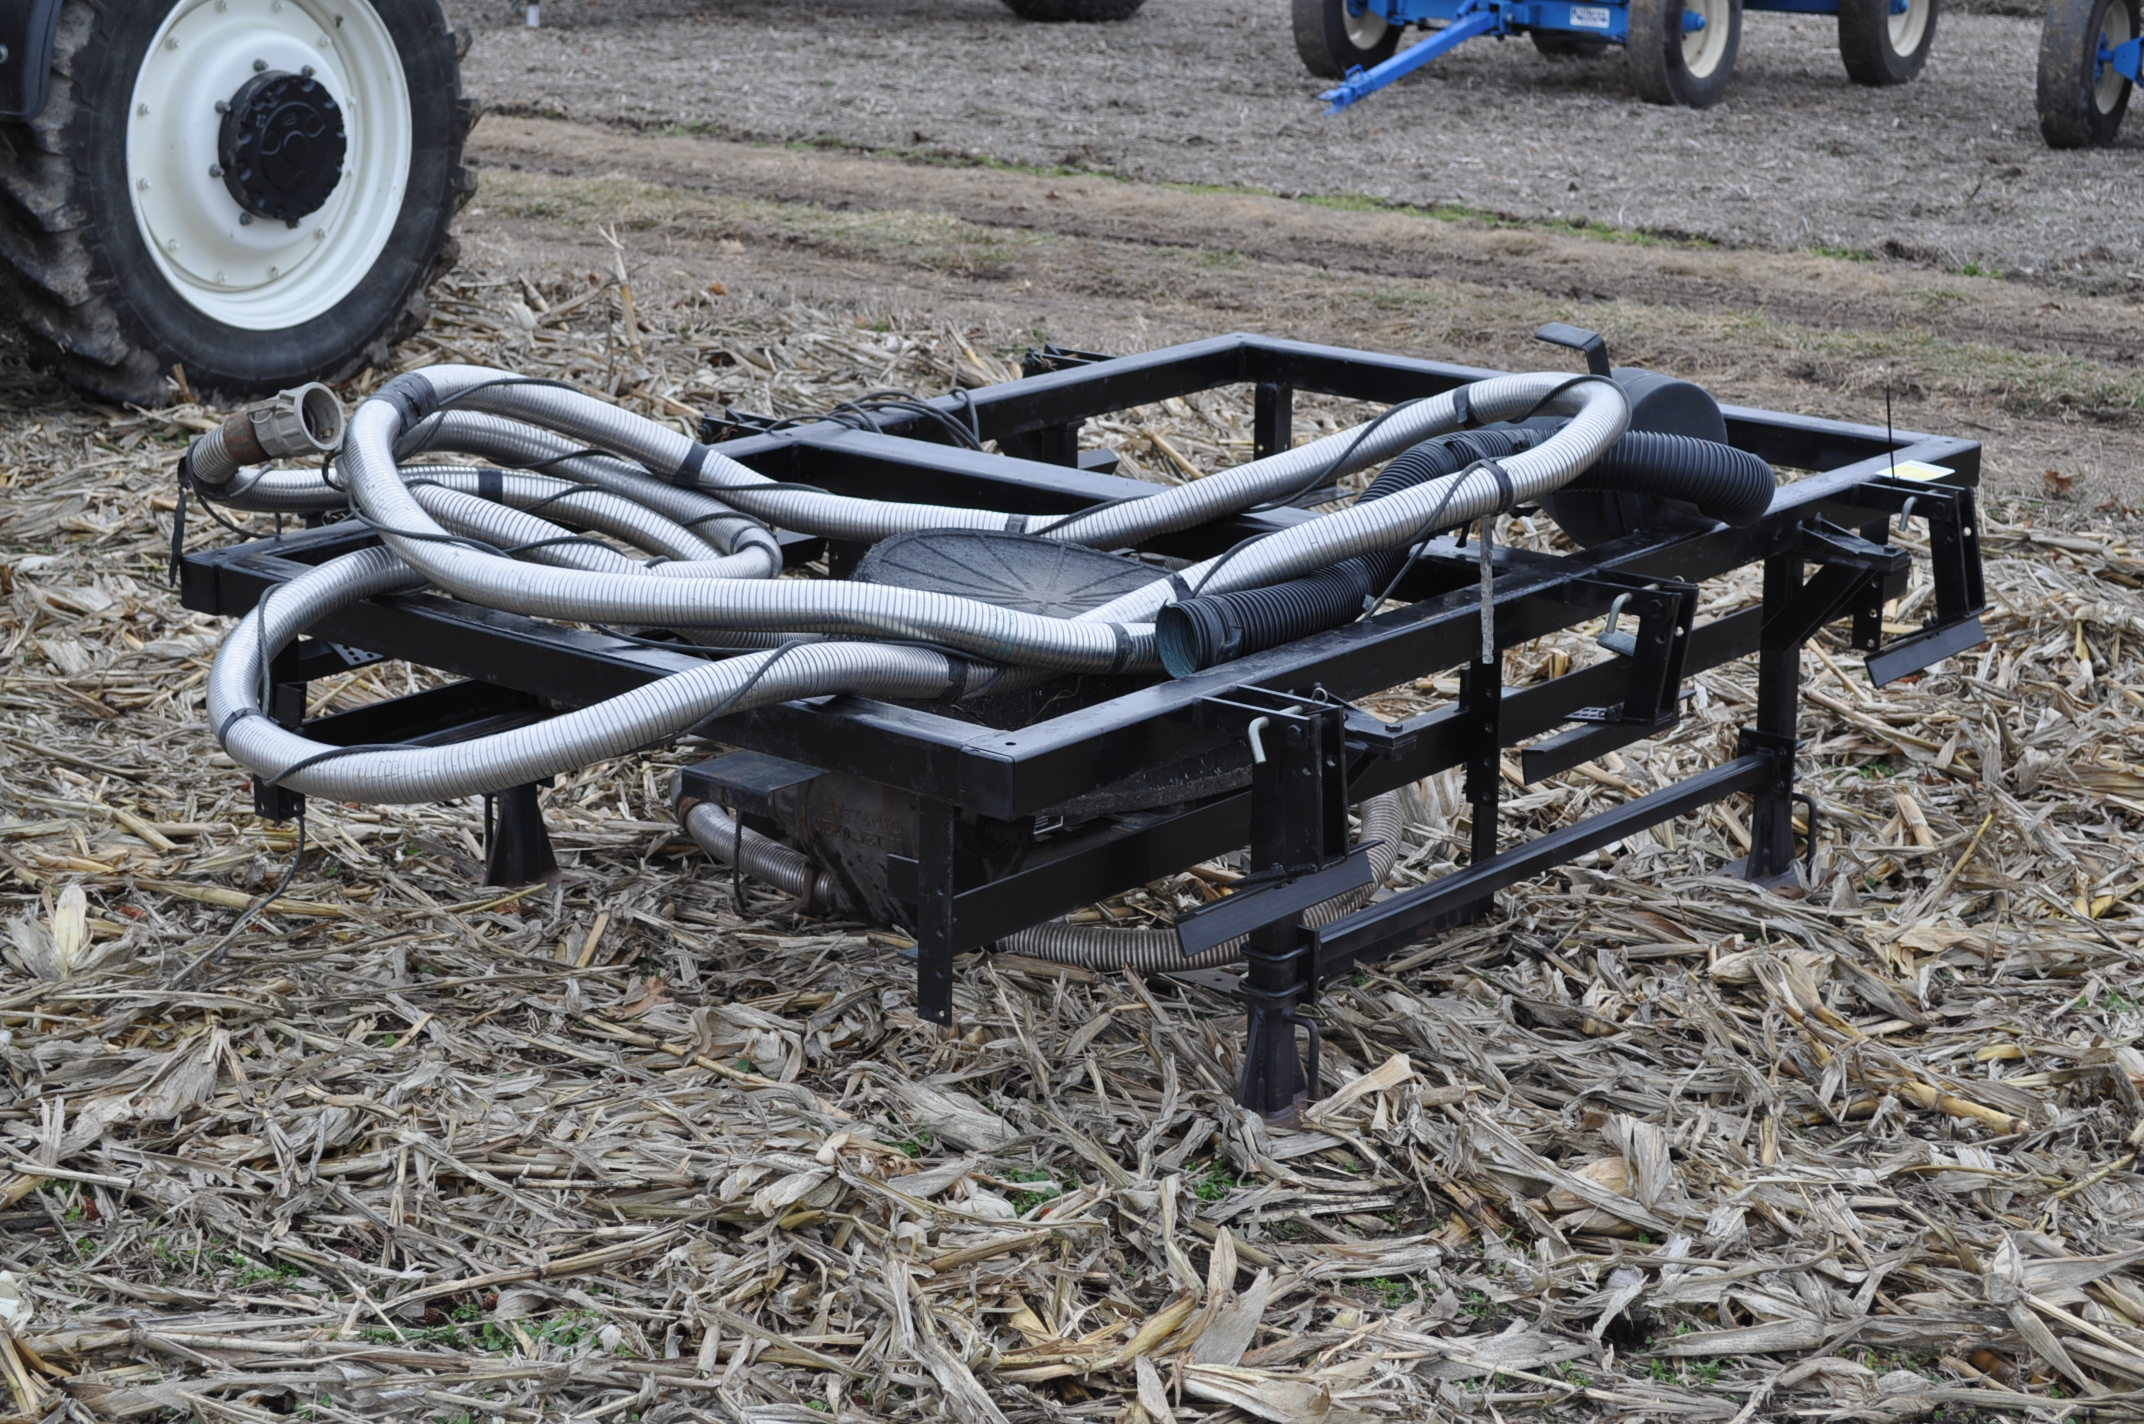 Yetter Seed Jet II air transfer seed tender, holds 2 pro boxes, Briggs & Stratton gas engine - Image 4 of 9